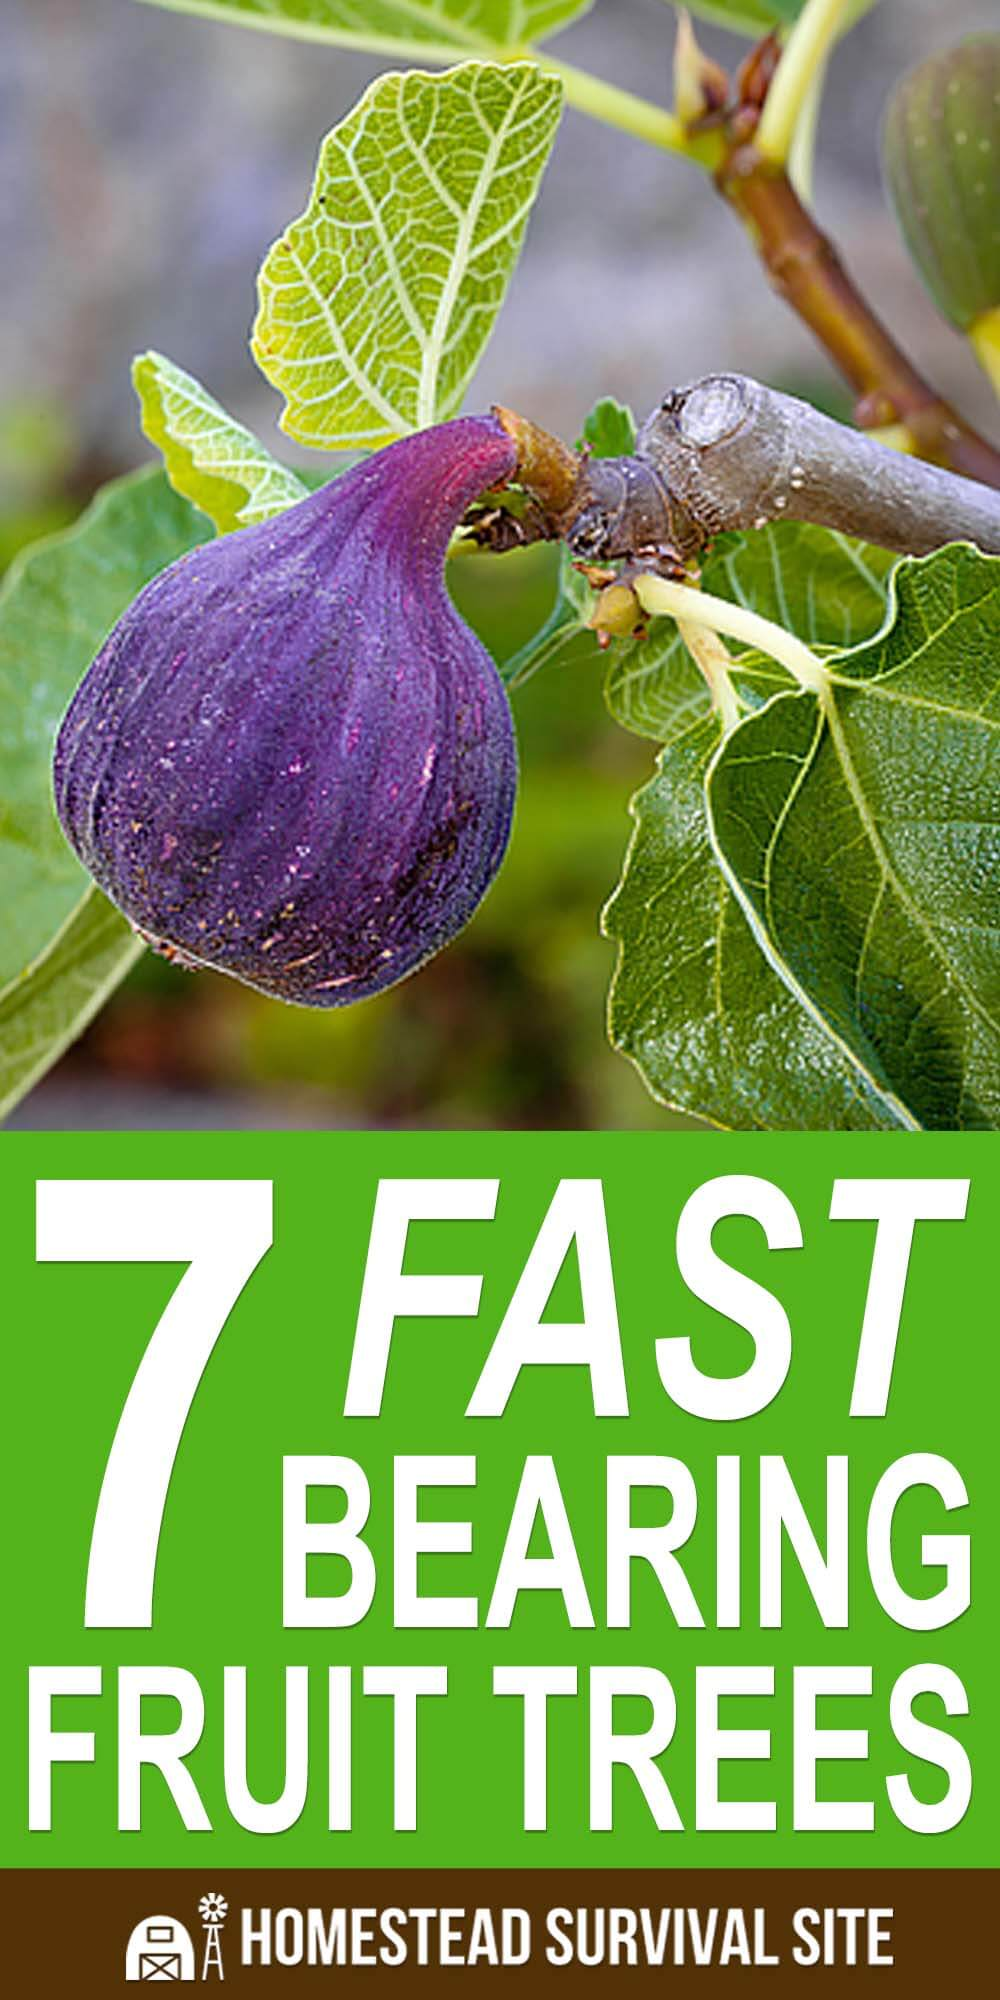 7 Fast Bearing Fruit Trees